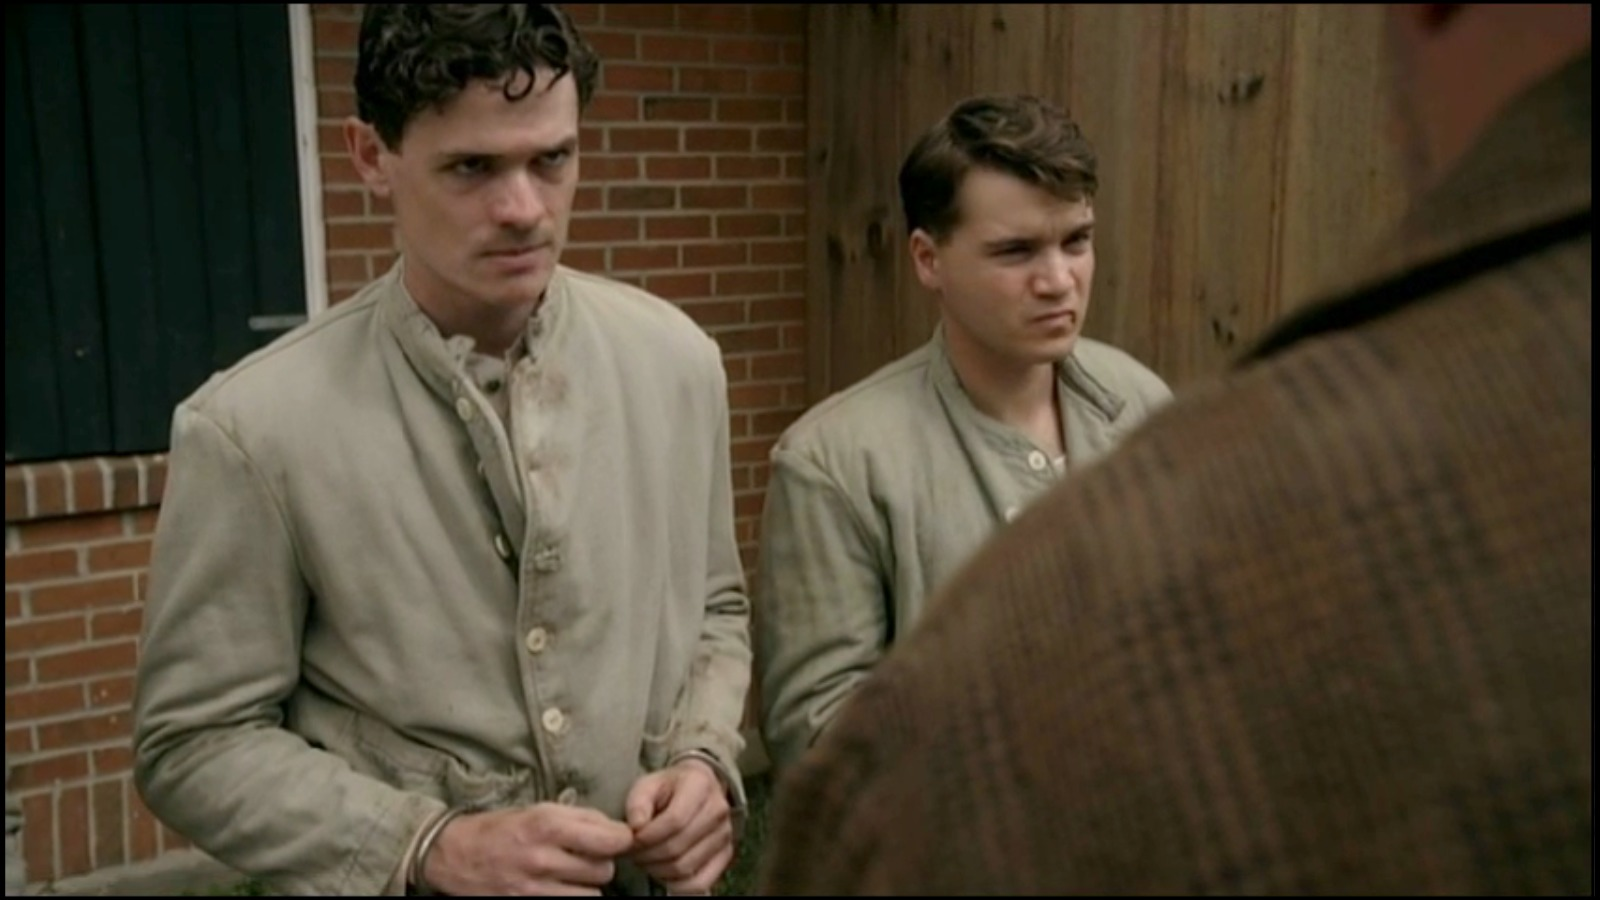 Aaron Jay Rome and Emile Hirsch in Bonnie and Clyde (2015)